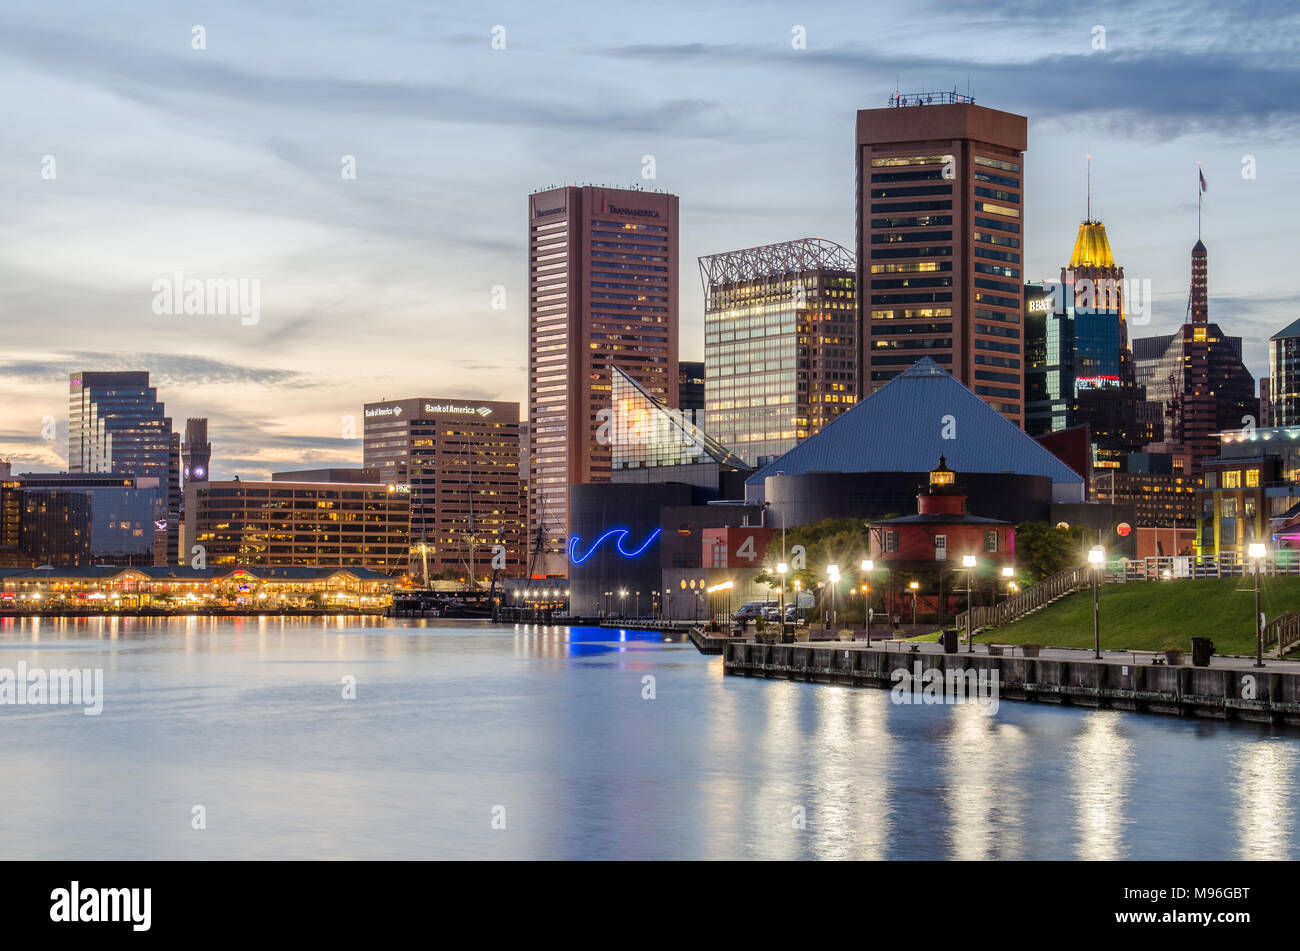 The Inner Harbor in Baltimore, Maryland - Stock Image